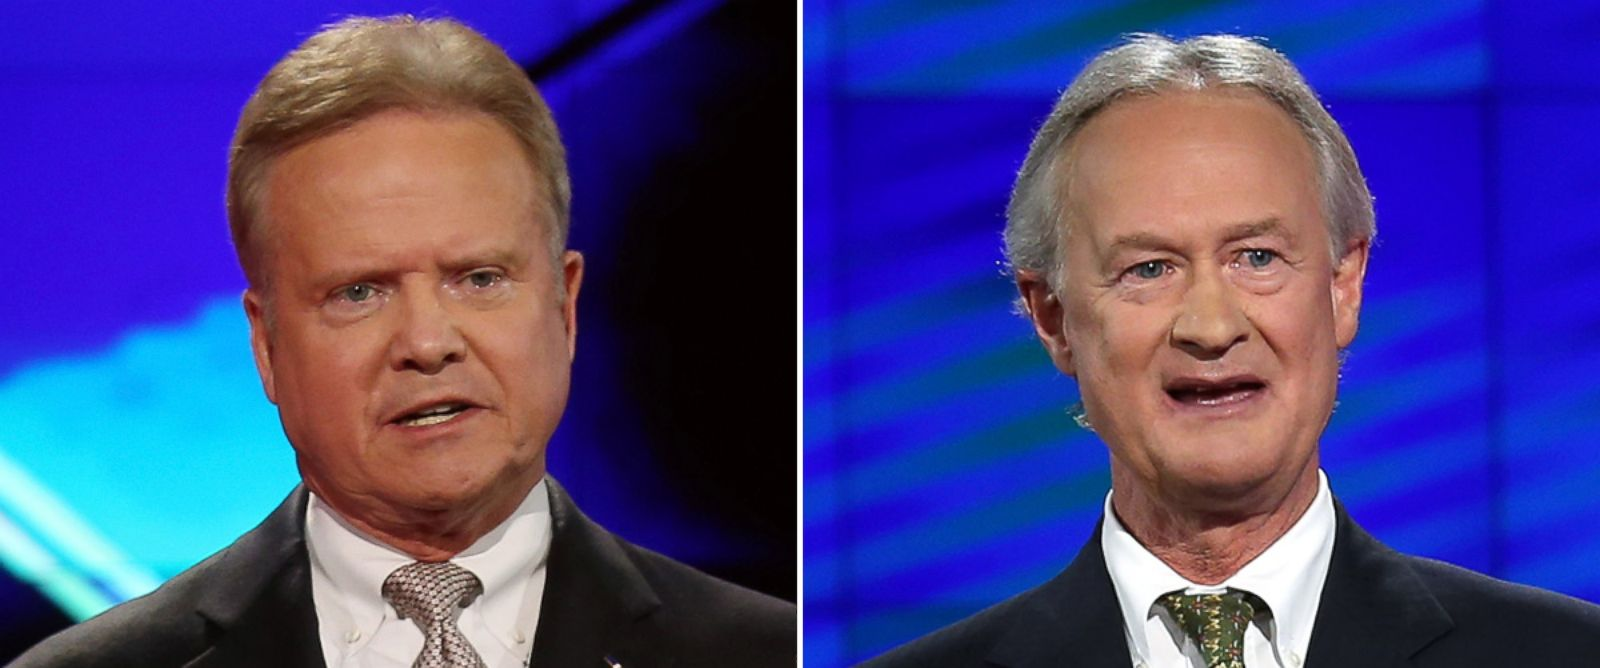 PHOTO: Democratic presidential candidates Jim Webb and Lincoln Chafee take part in a presidential debate sponsored by CNN and Facebook at Wynn Las Vegas on Oct. 13, 2015 in Las Vegas.